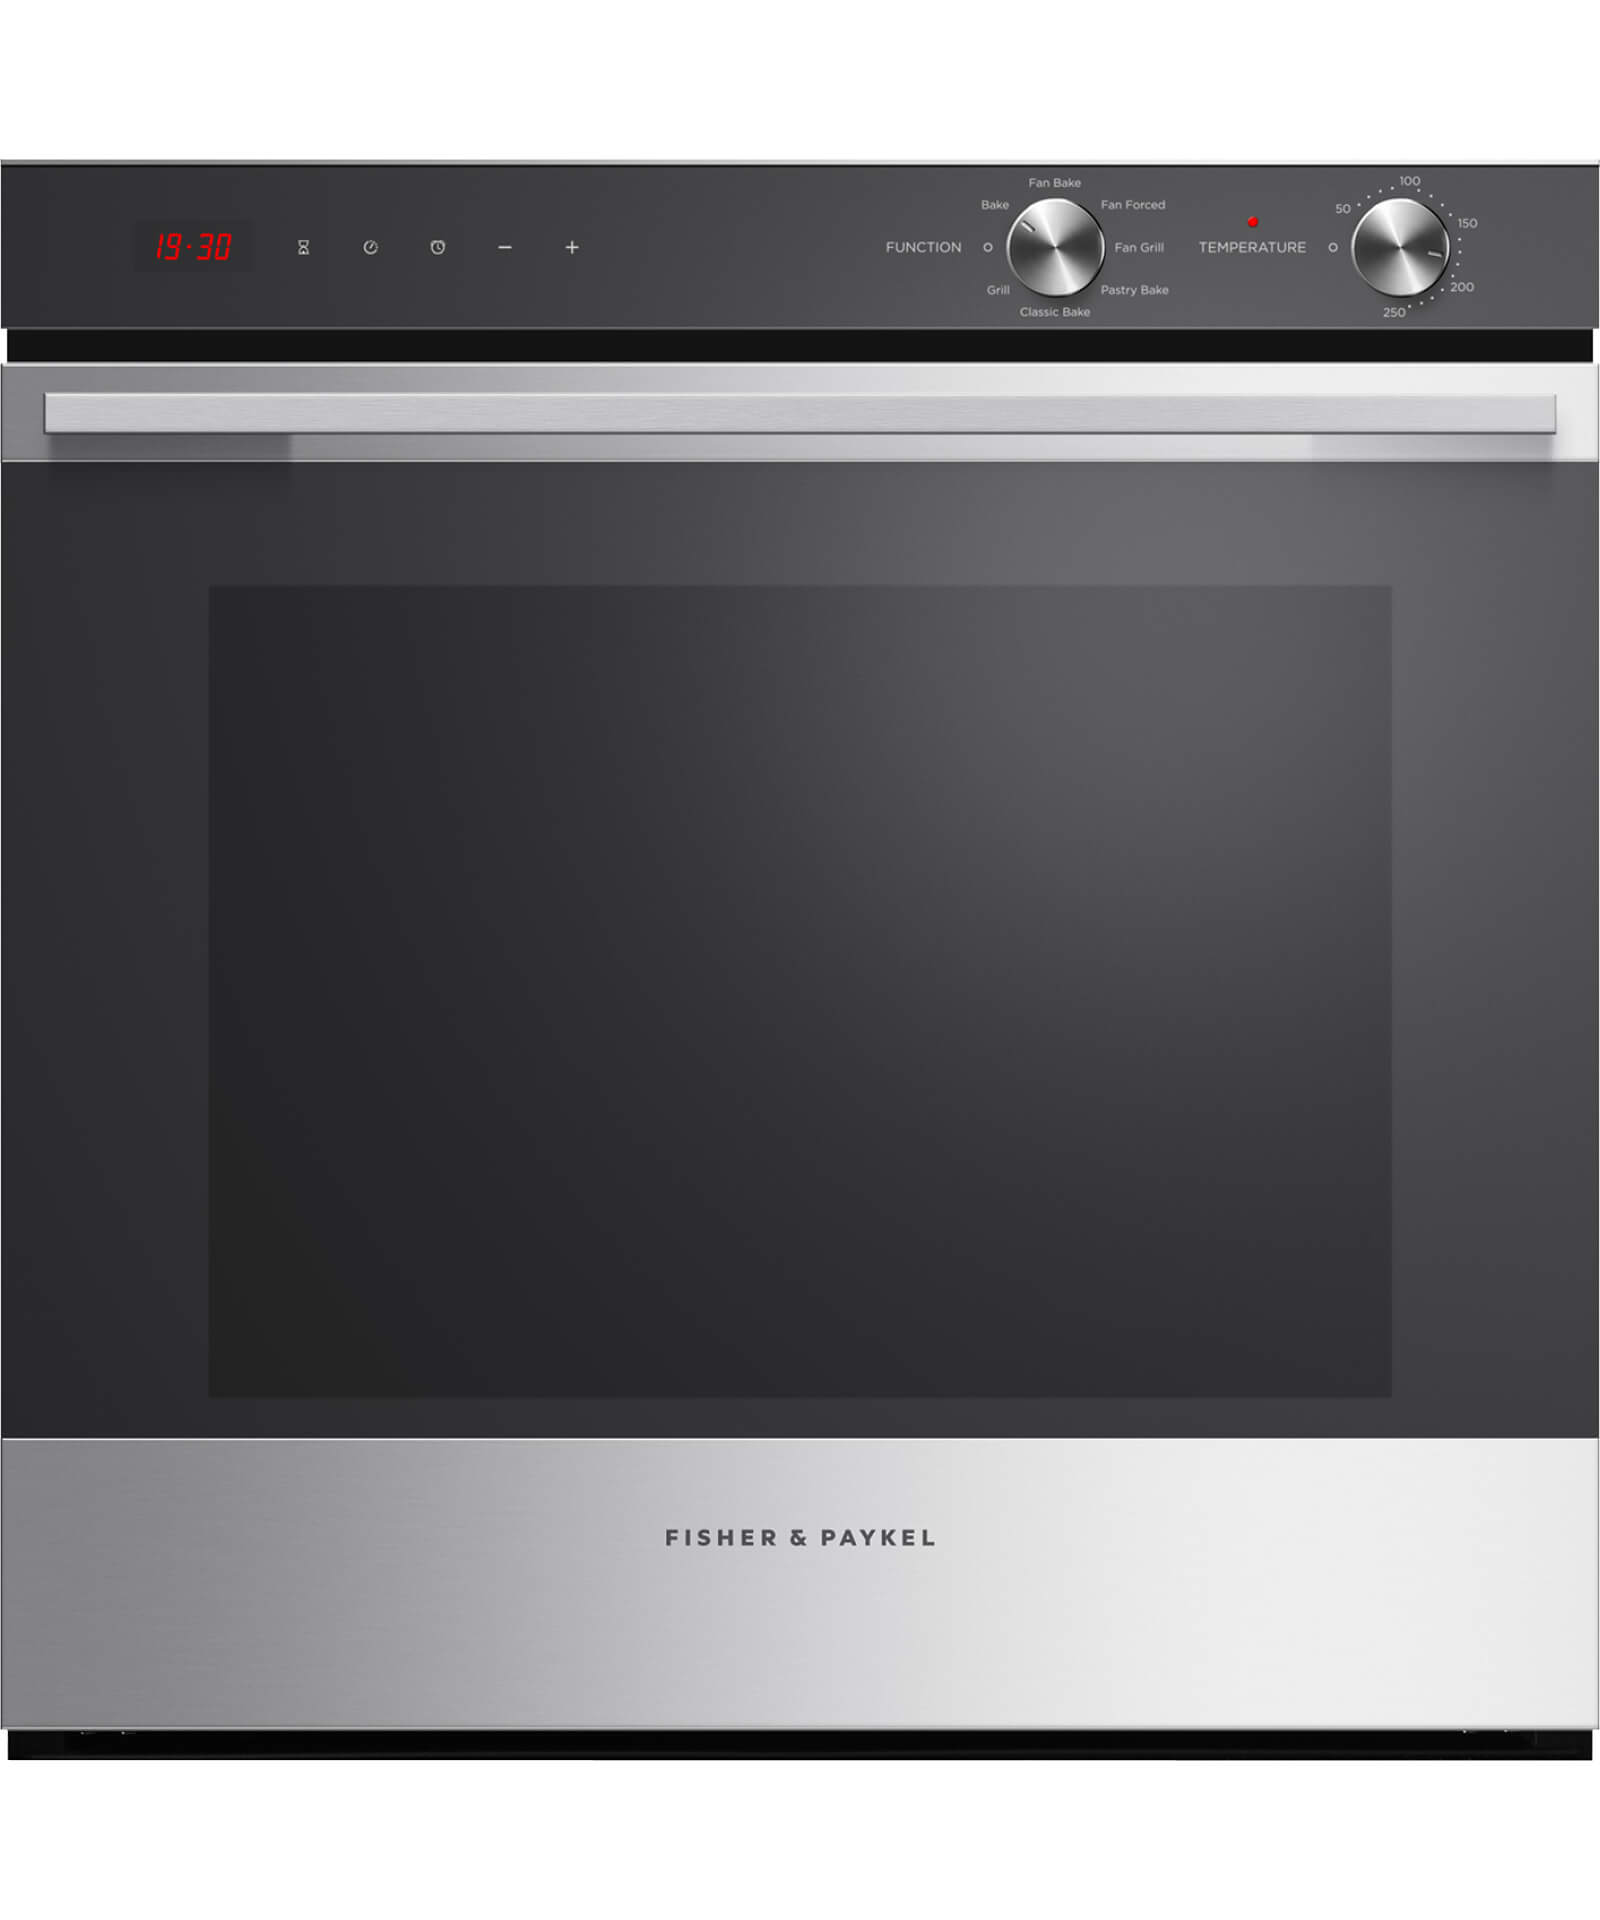 Ob60sl7dex1 Fisher And Paykel Function Single Built In Oven Wiring Instructions 60cm 7 90l Gross Capacity 81479